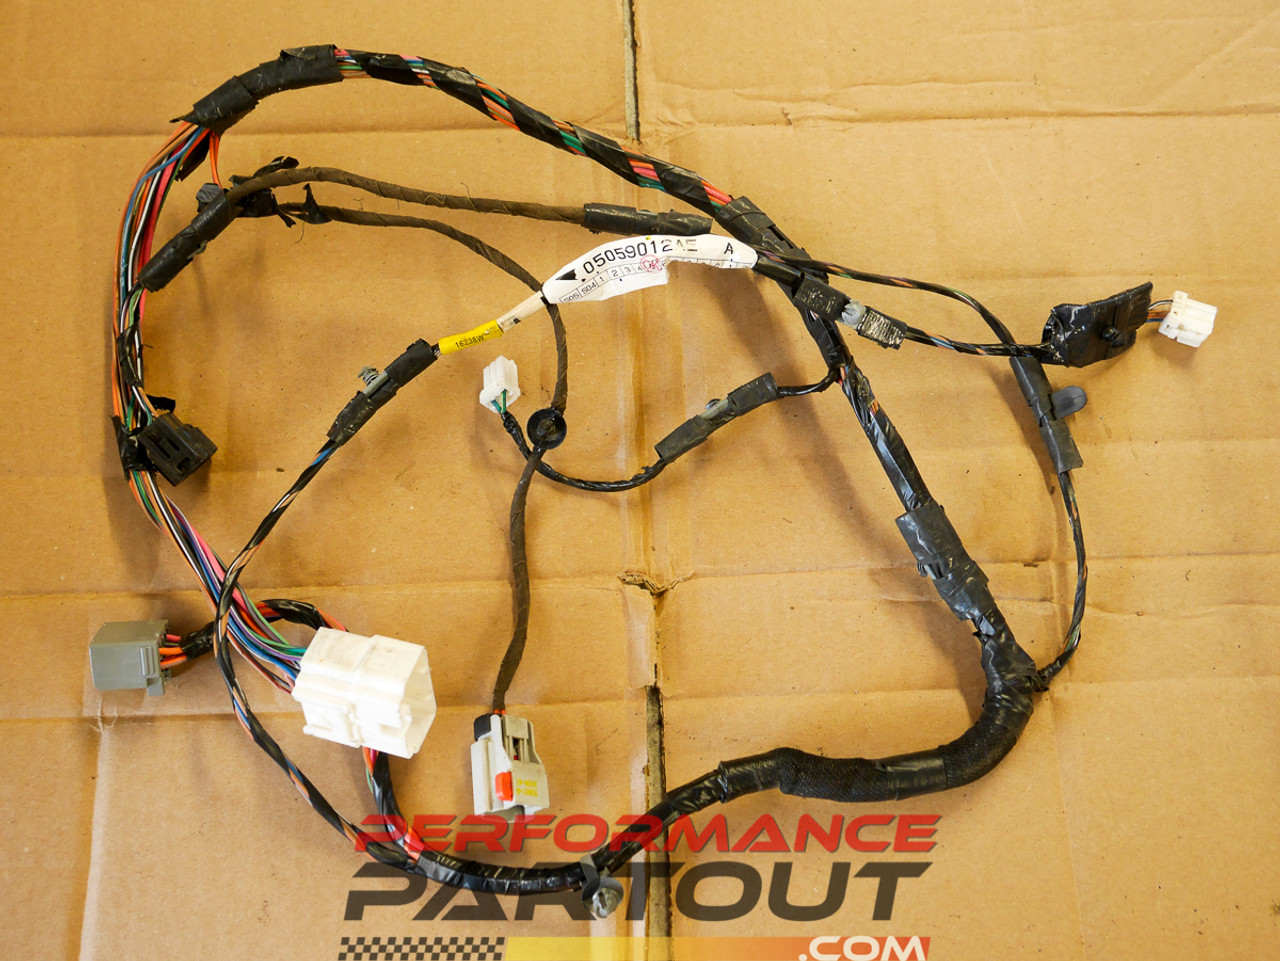 hight resolution of door wiring harness passenger right front magnum charger 300 05 07 performance partout